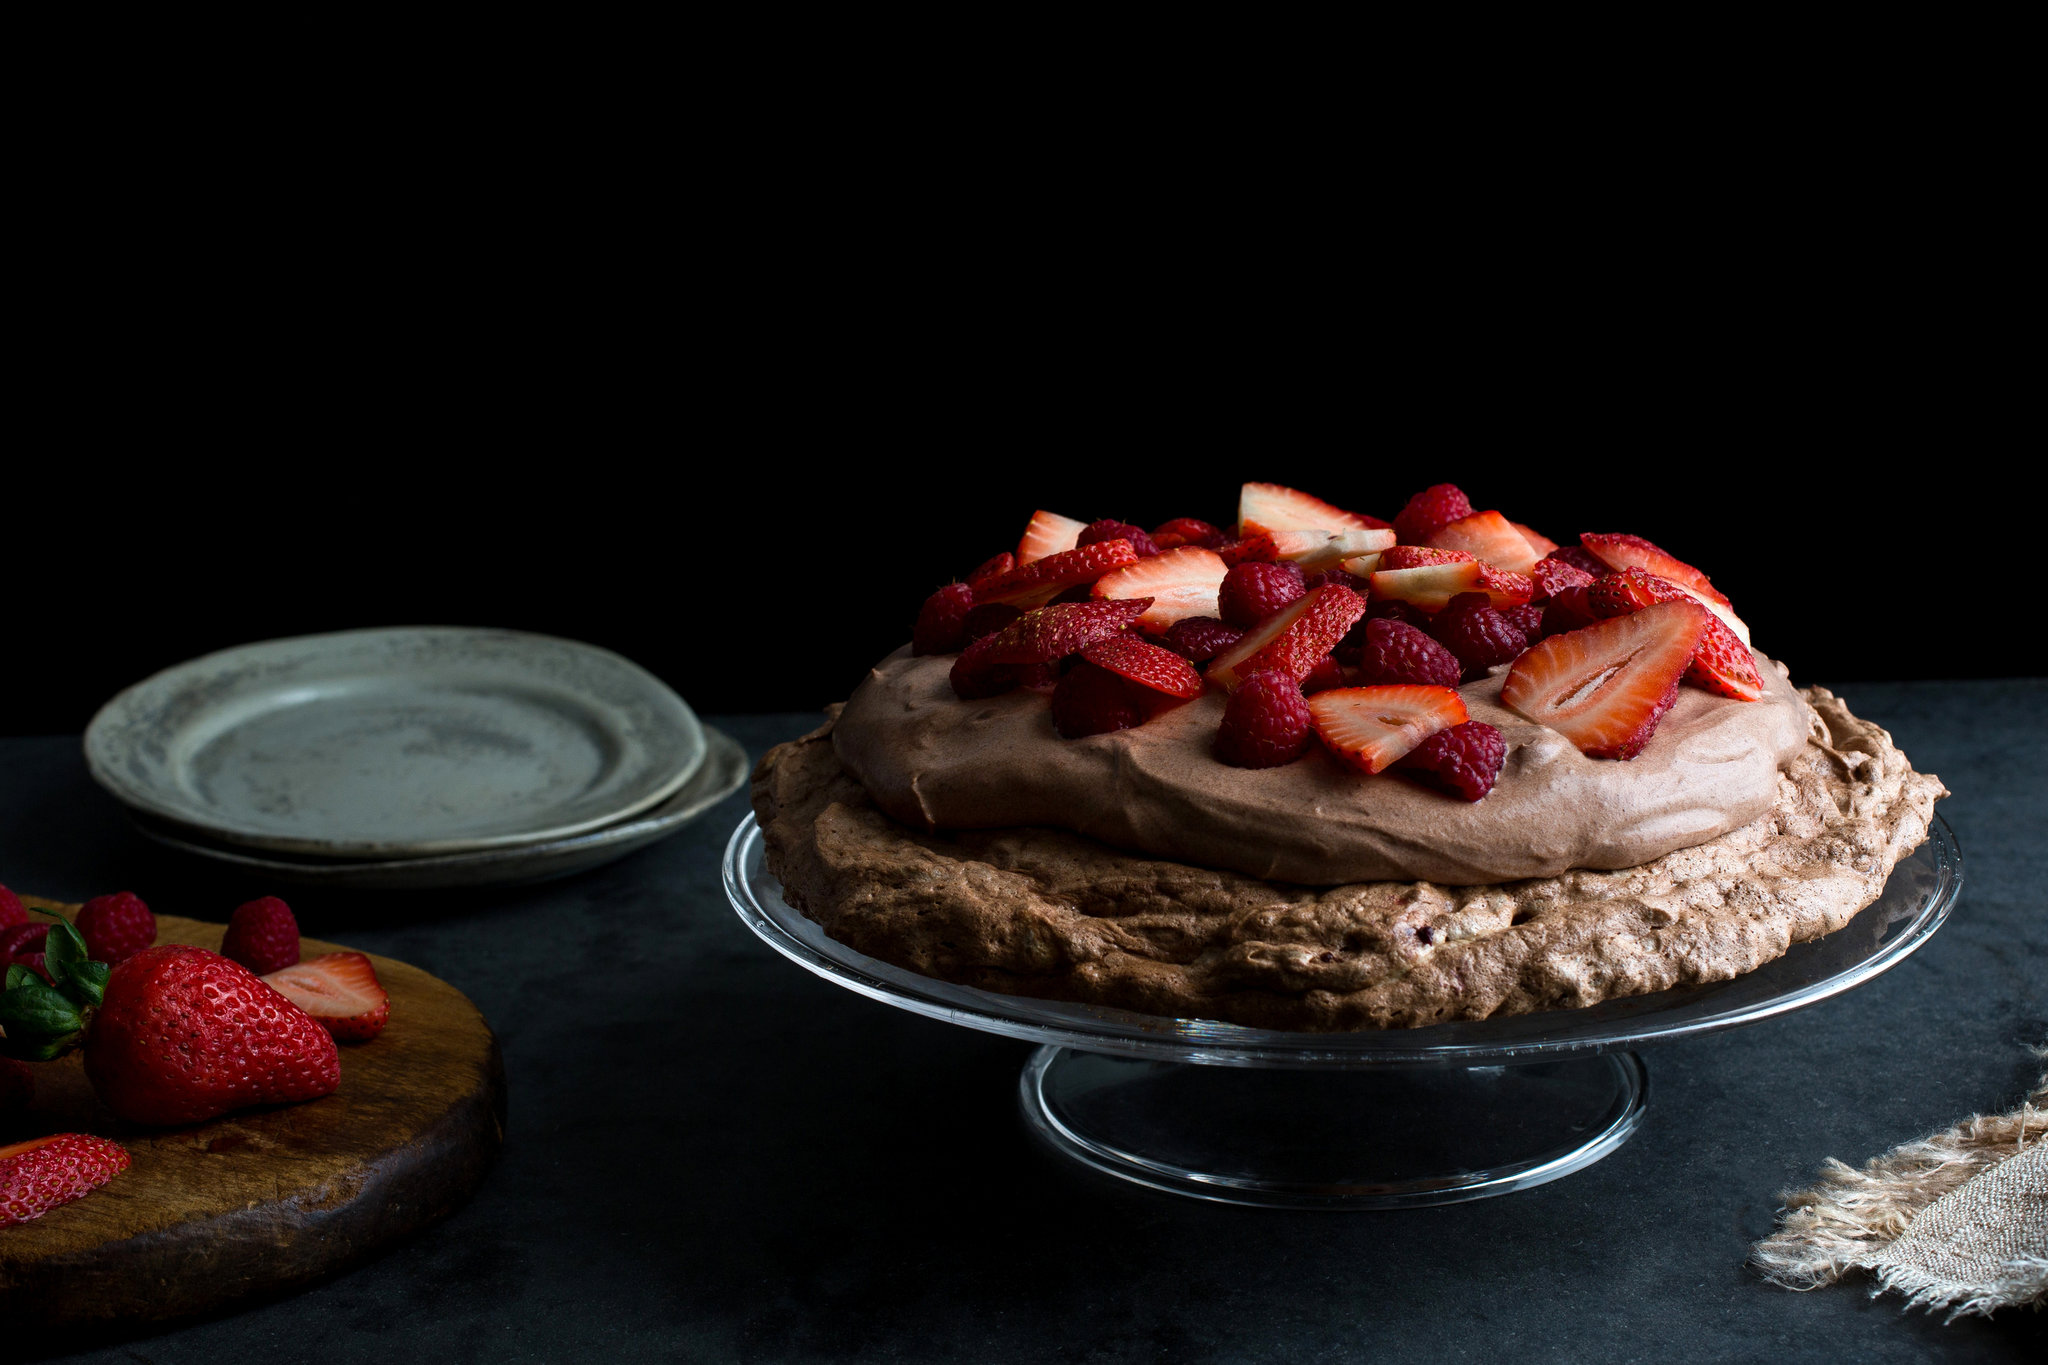 How to Make Chocolate Pavlova with Chocolate Mousse